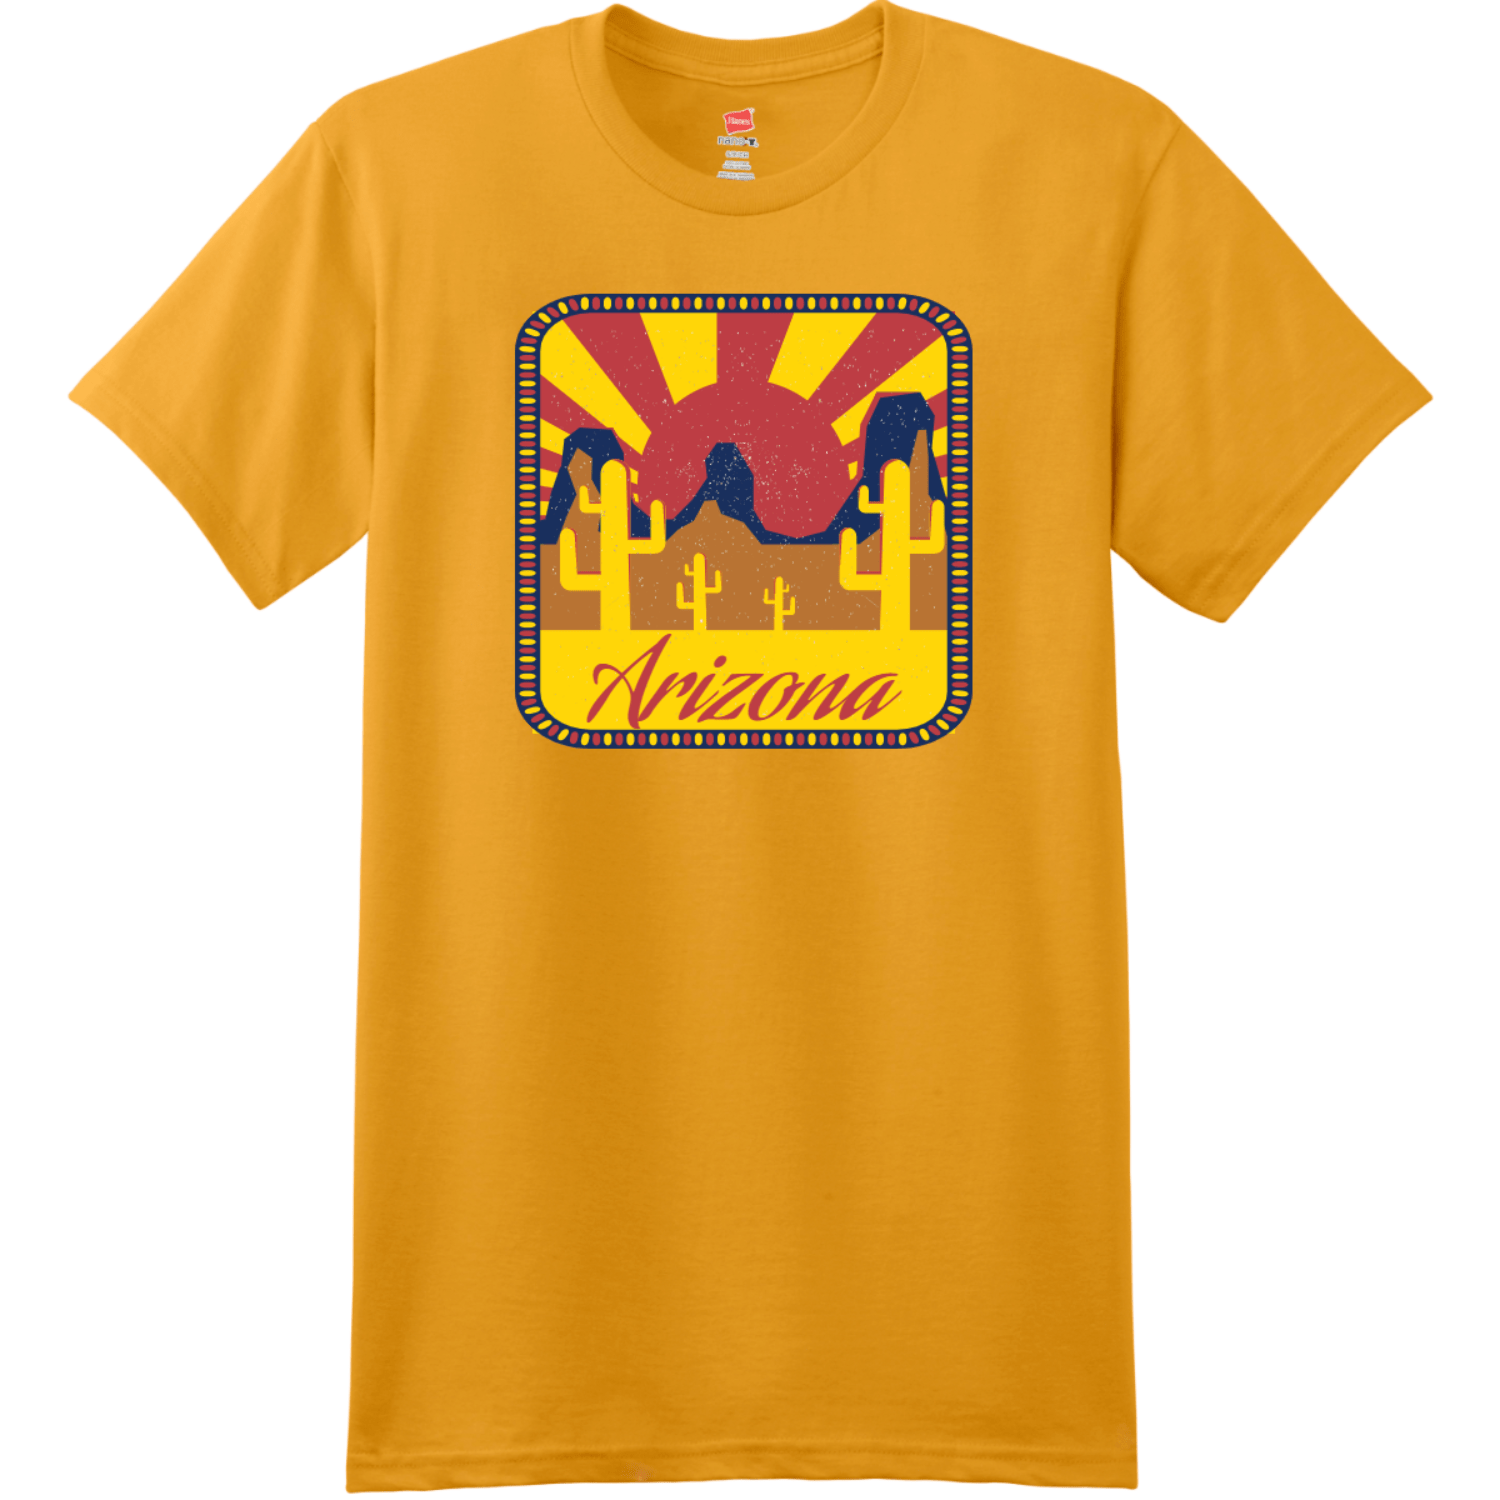 Arizona Desert Sun T-Shirt Gold Hanes Nano 4980 Ringspun Cotton T Shirt